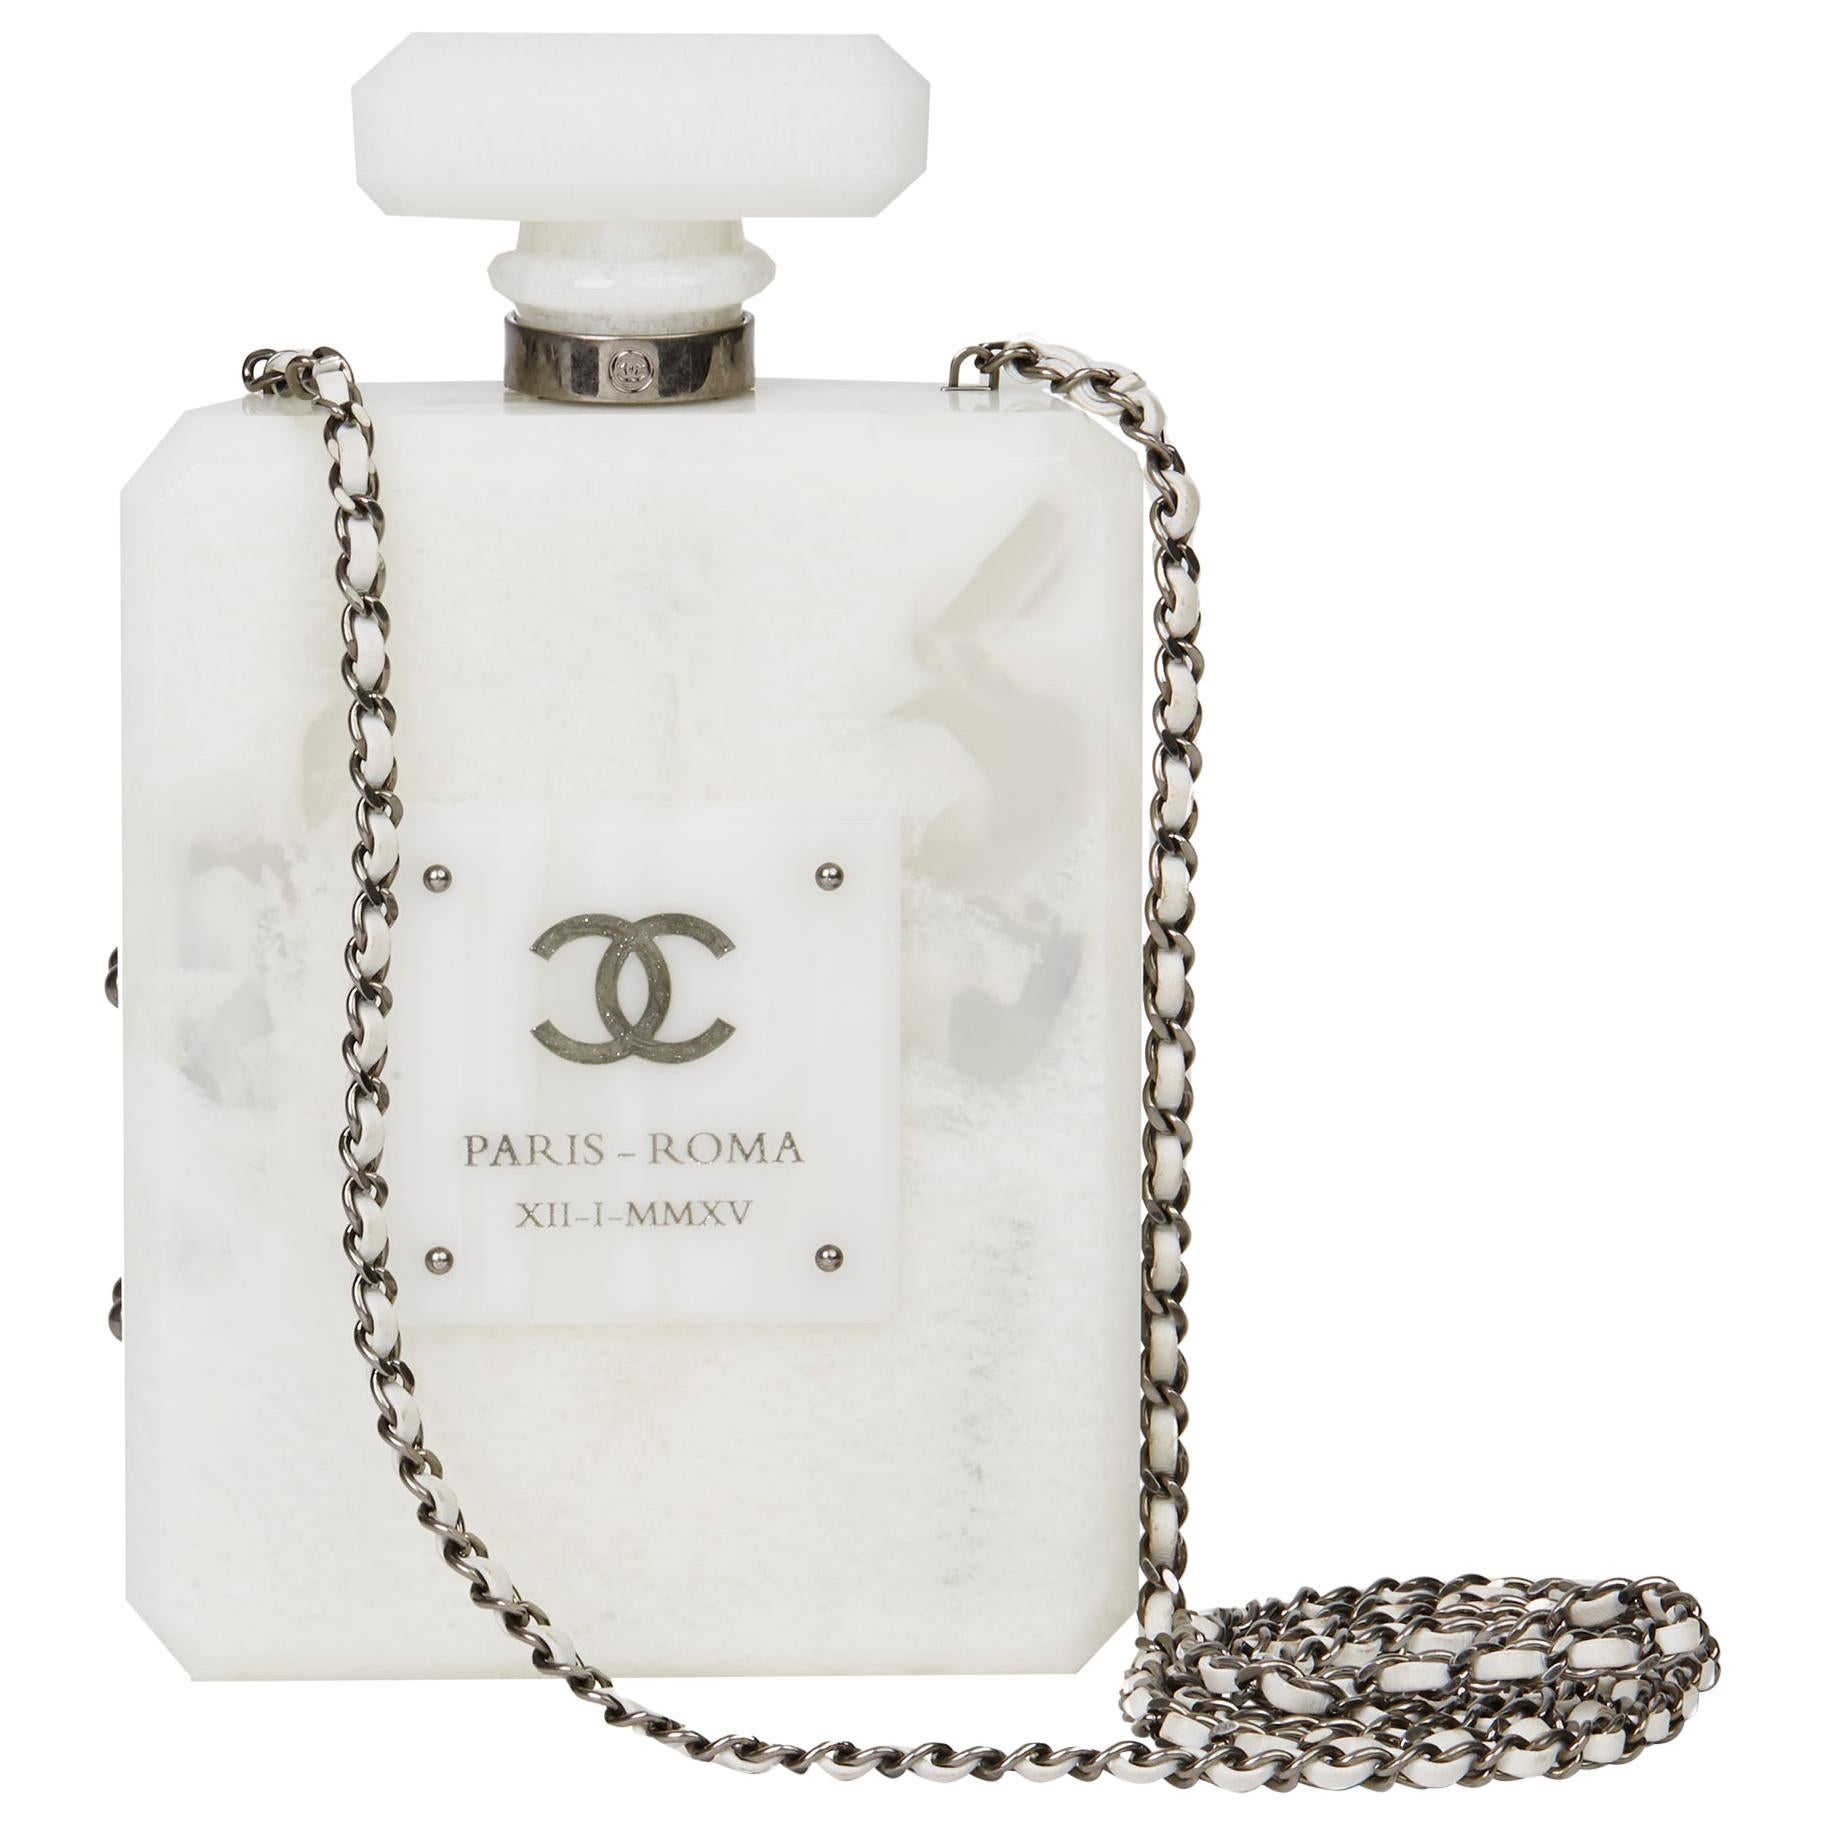 2016 Chanel White Marble Plexiglass Paris-Rome Perfume Bottle Bag